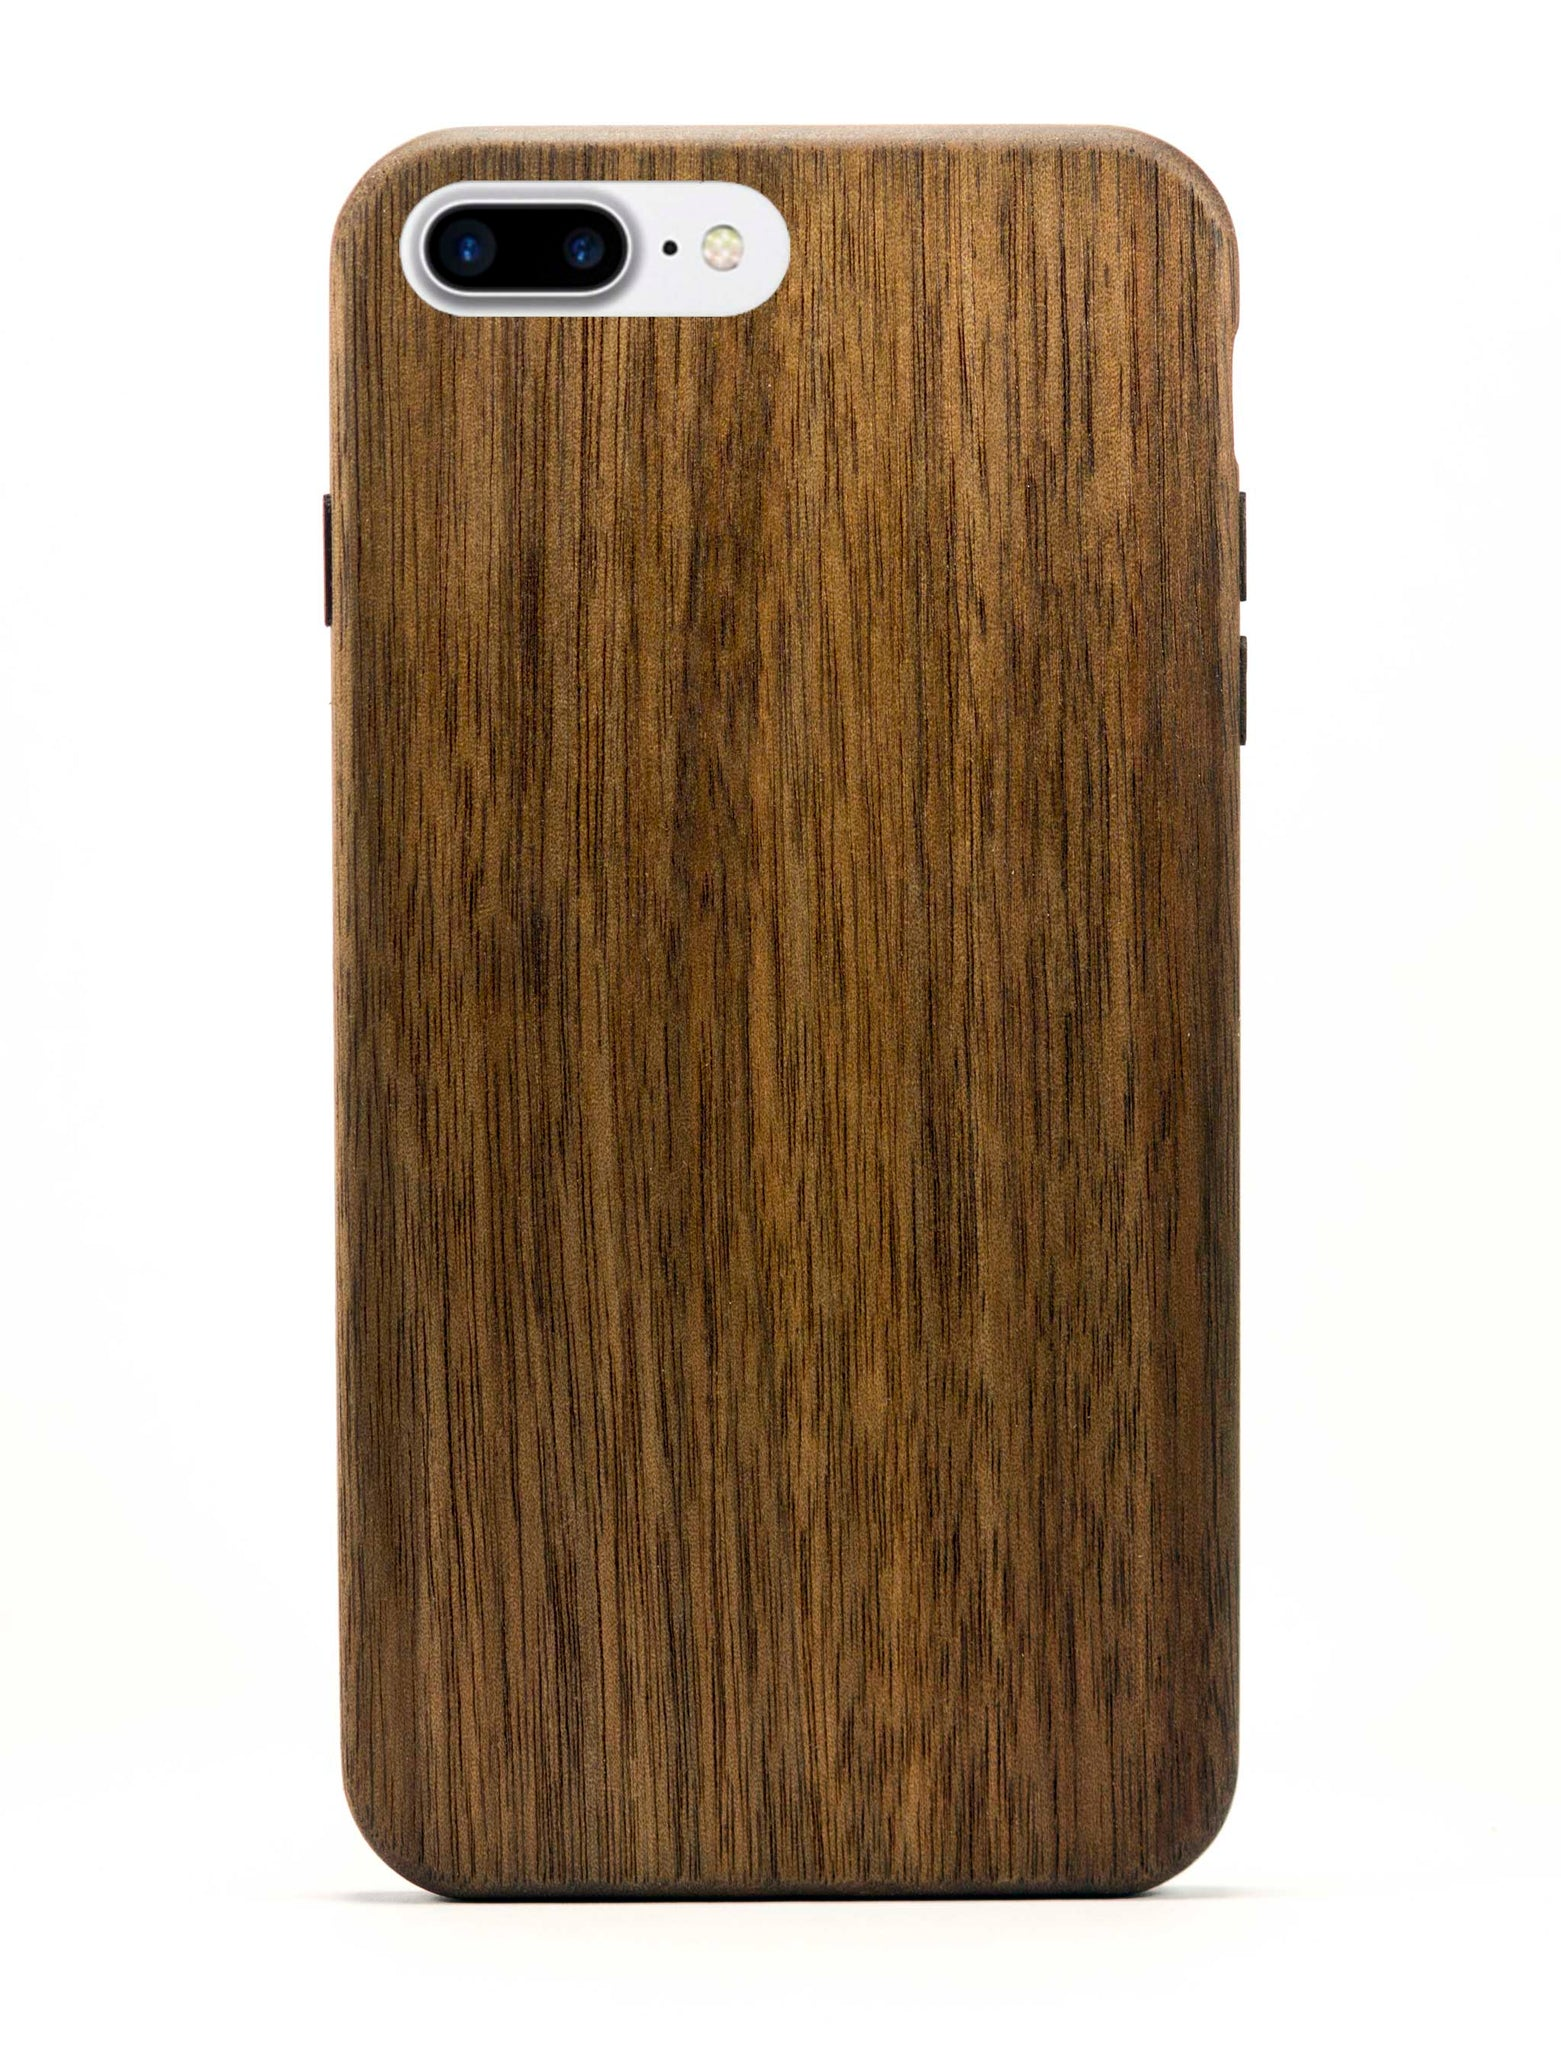 Walnut Wood iPhone 7 Plus Case